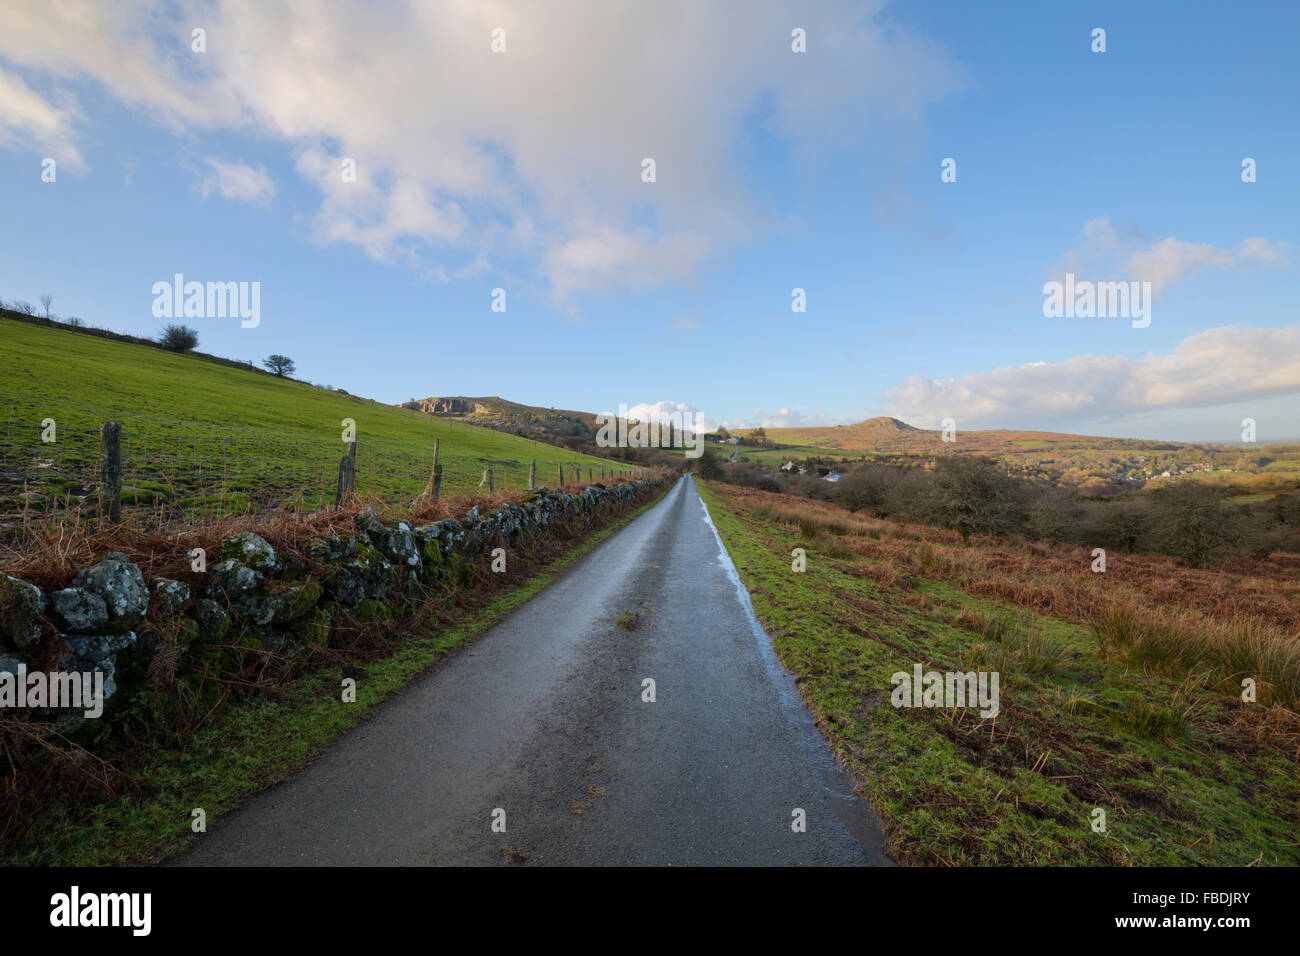 The moorland road from Minions to the village of Henwood - Stock Image